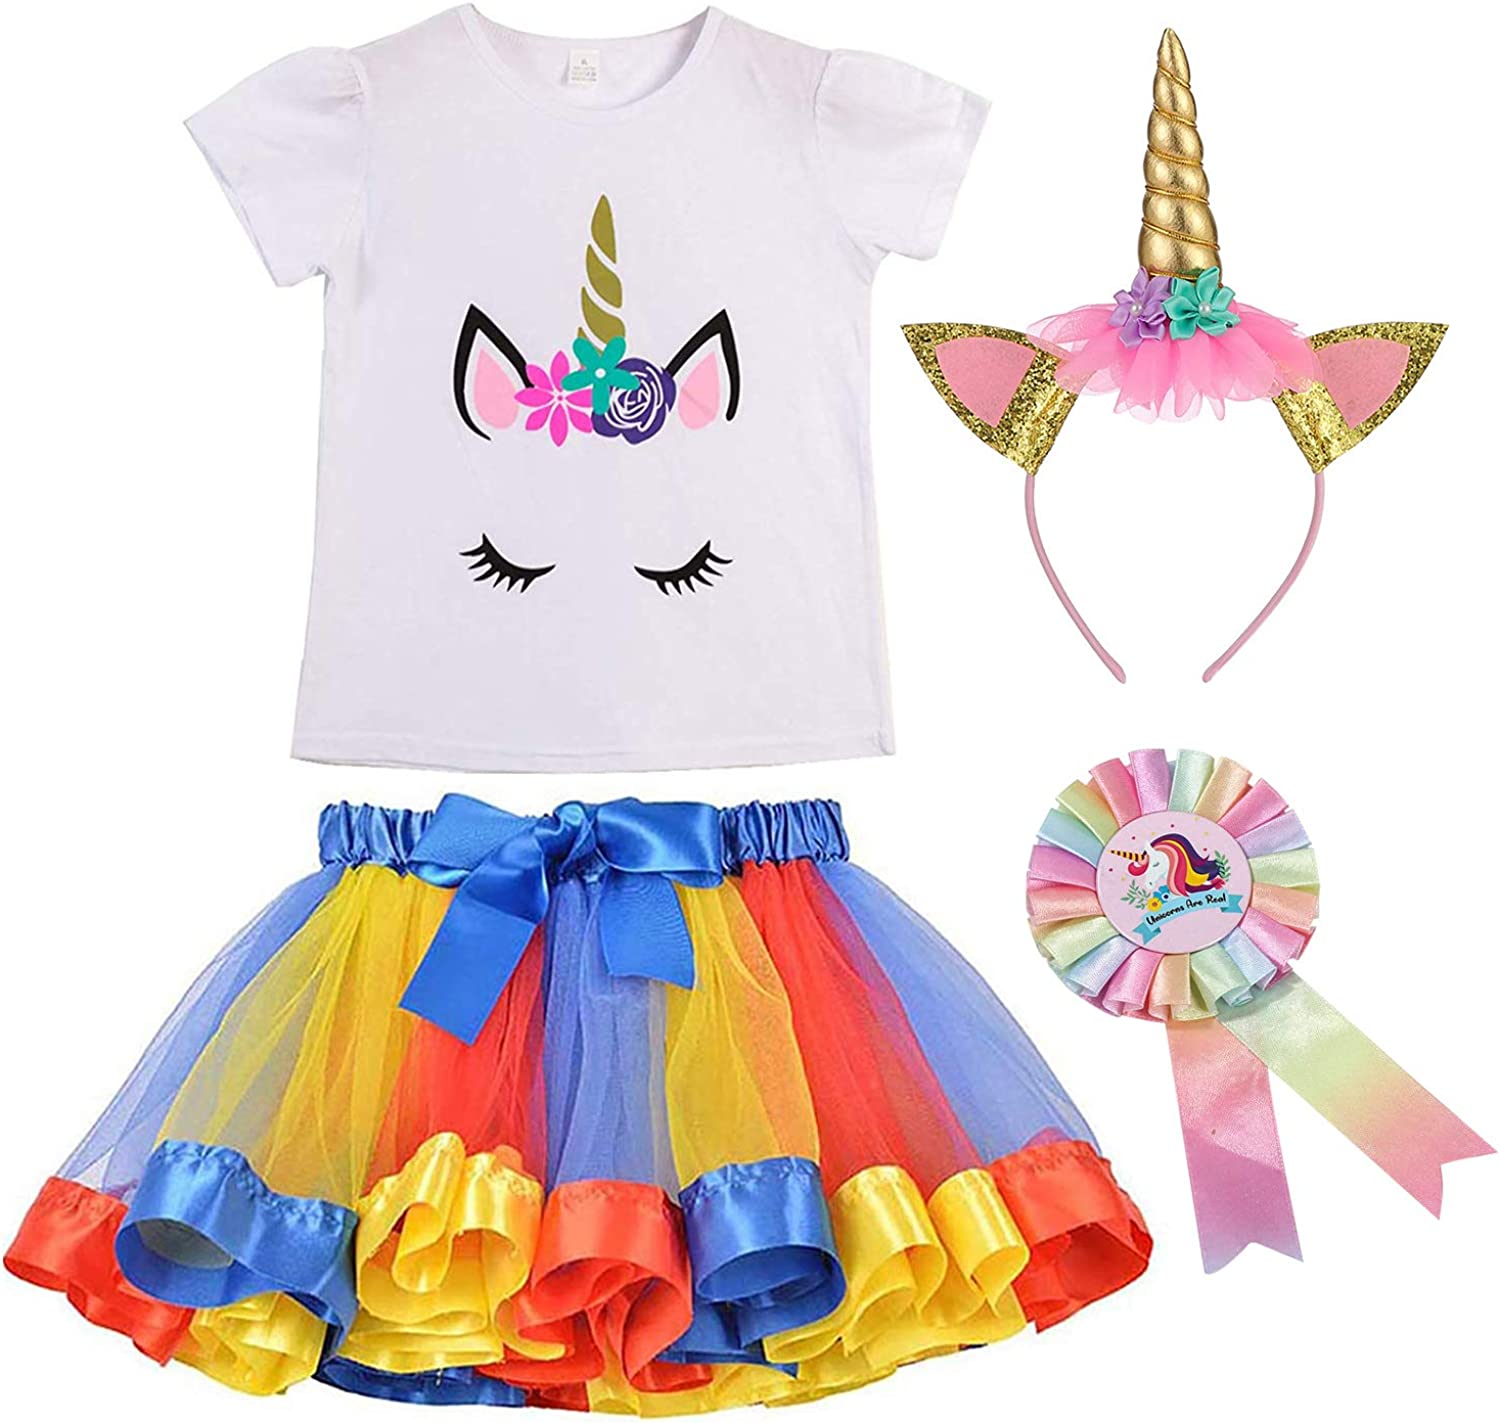 LYLKD Little Girls Layered Rainbow Tutu Skirts with Unicorn Horn Headband and Hairbow Gold, L,4-8 Years